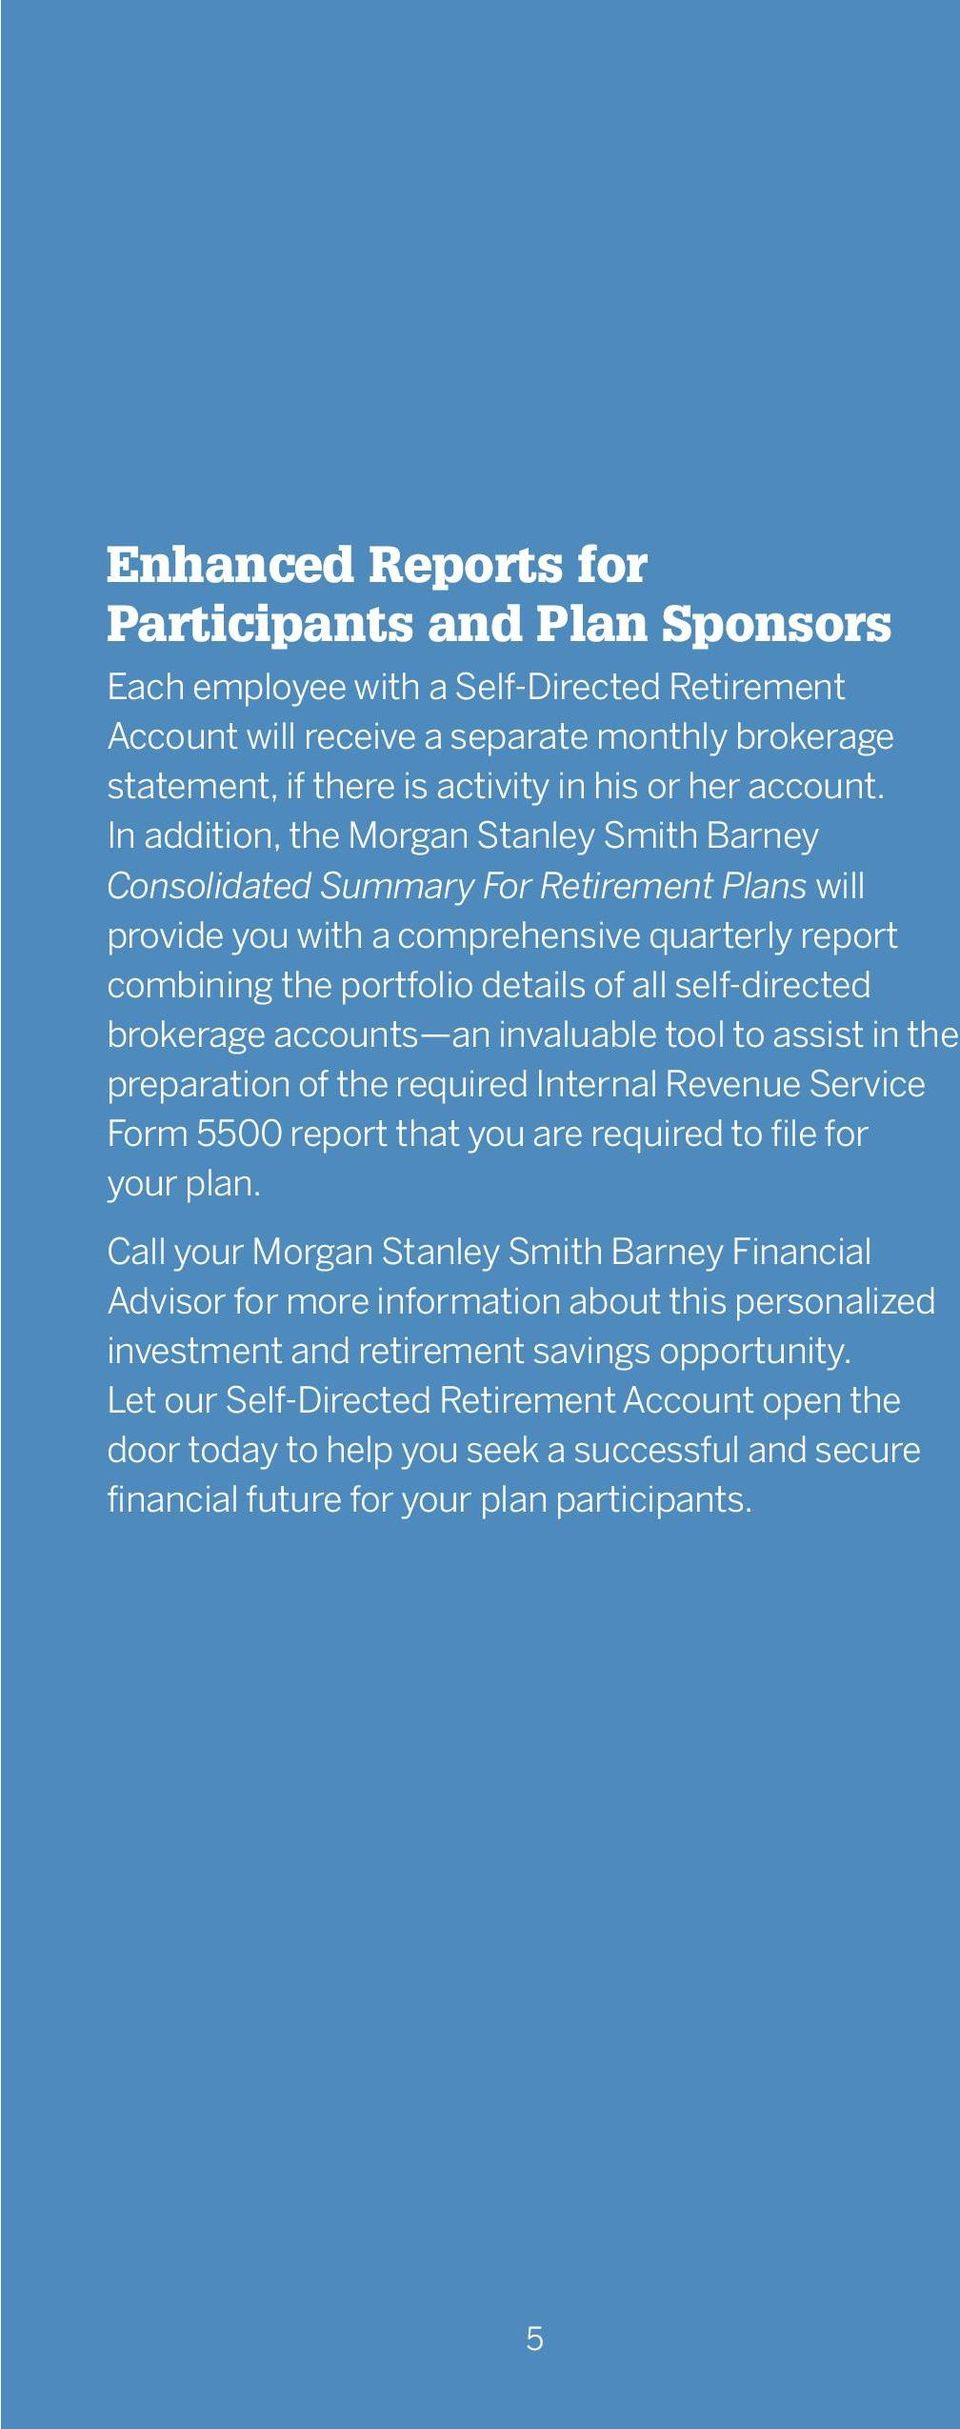 In addition, the Morgan Stanley Smith Barney Consolidated Summary For Retirement Plans will provide you with a comprehensive quarterly report combining the portfolio details of all self-directed